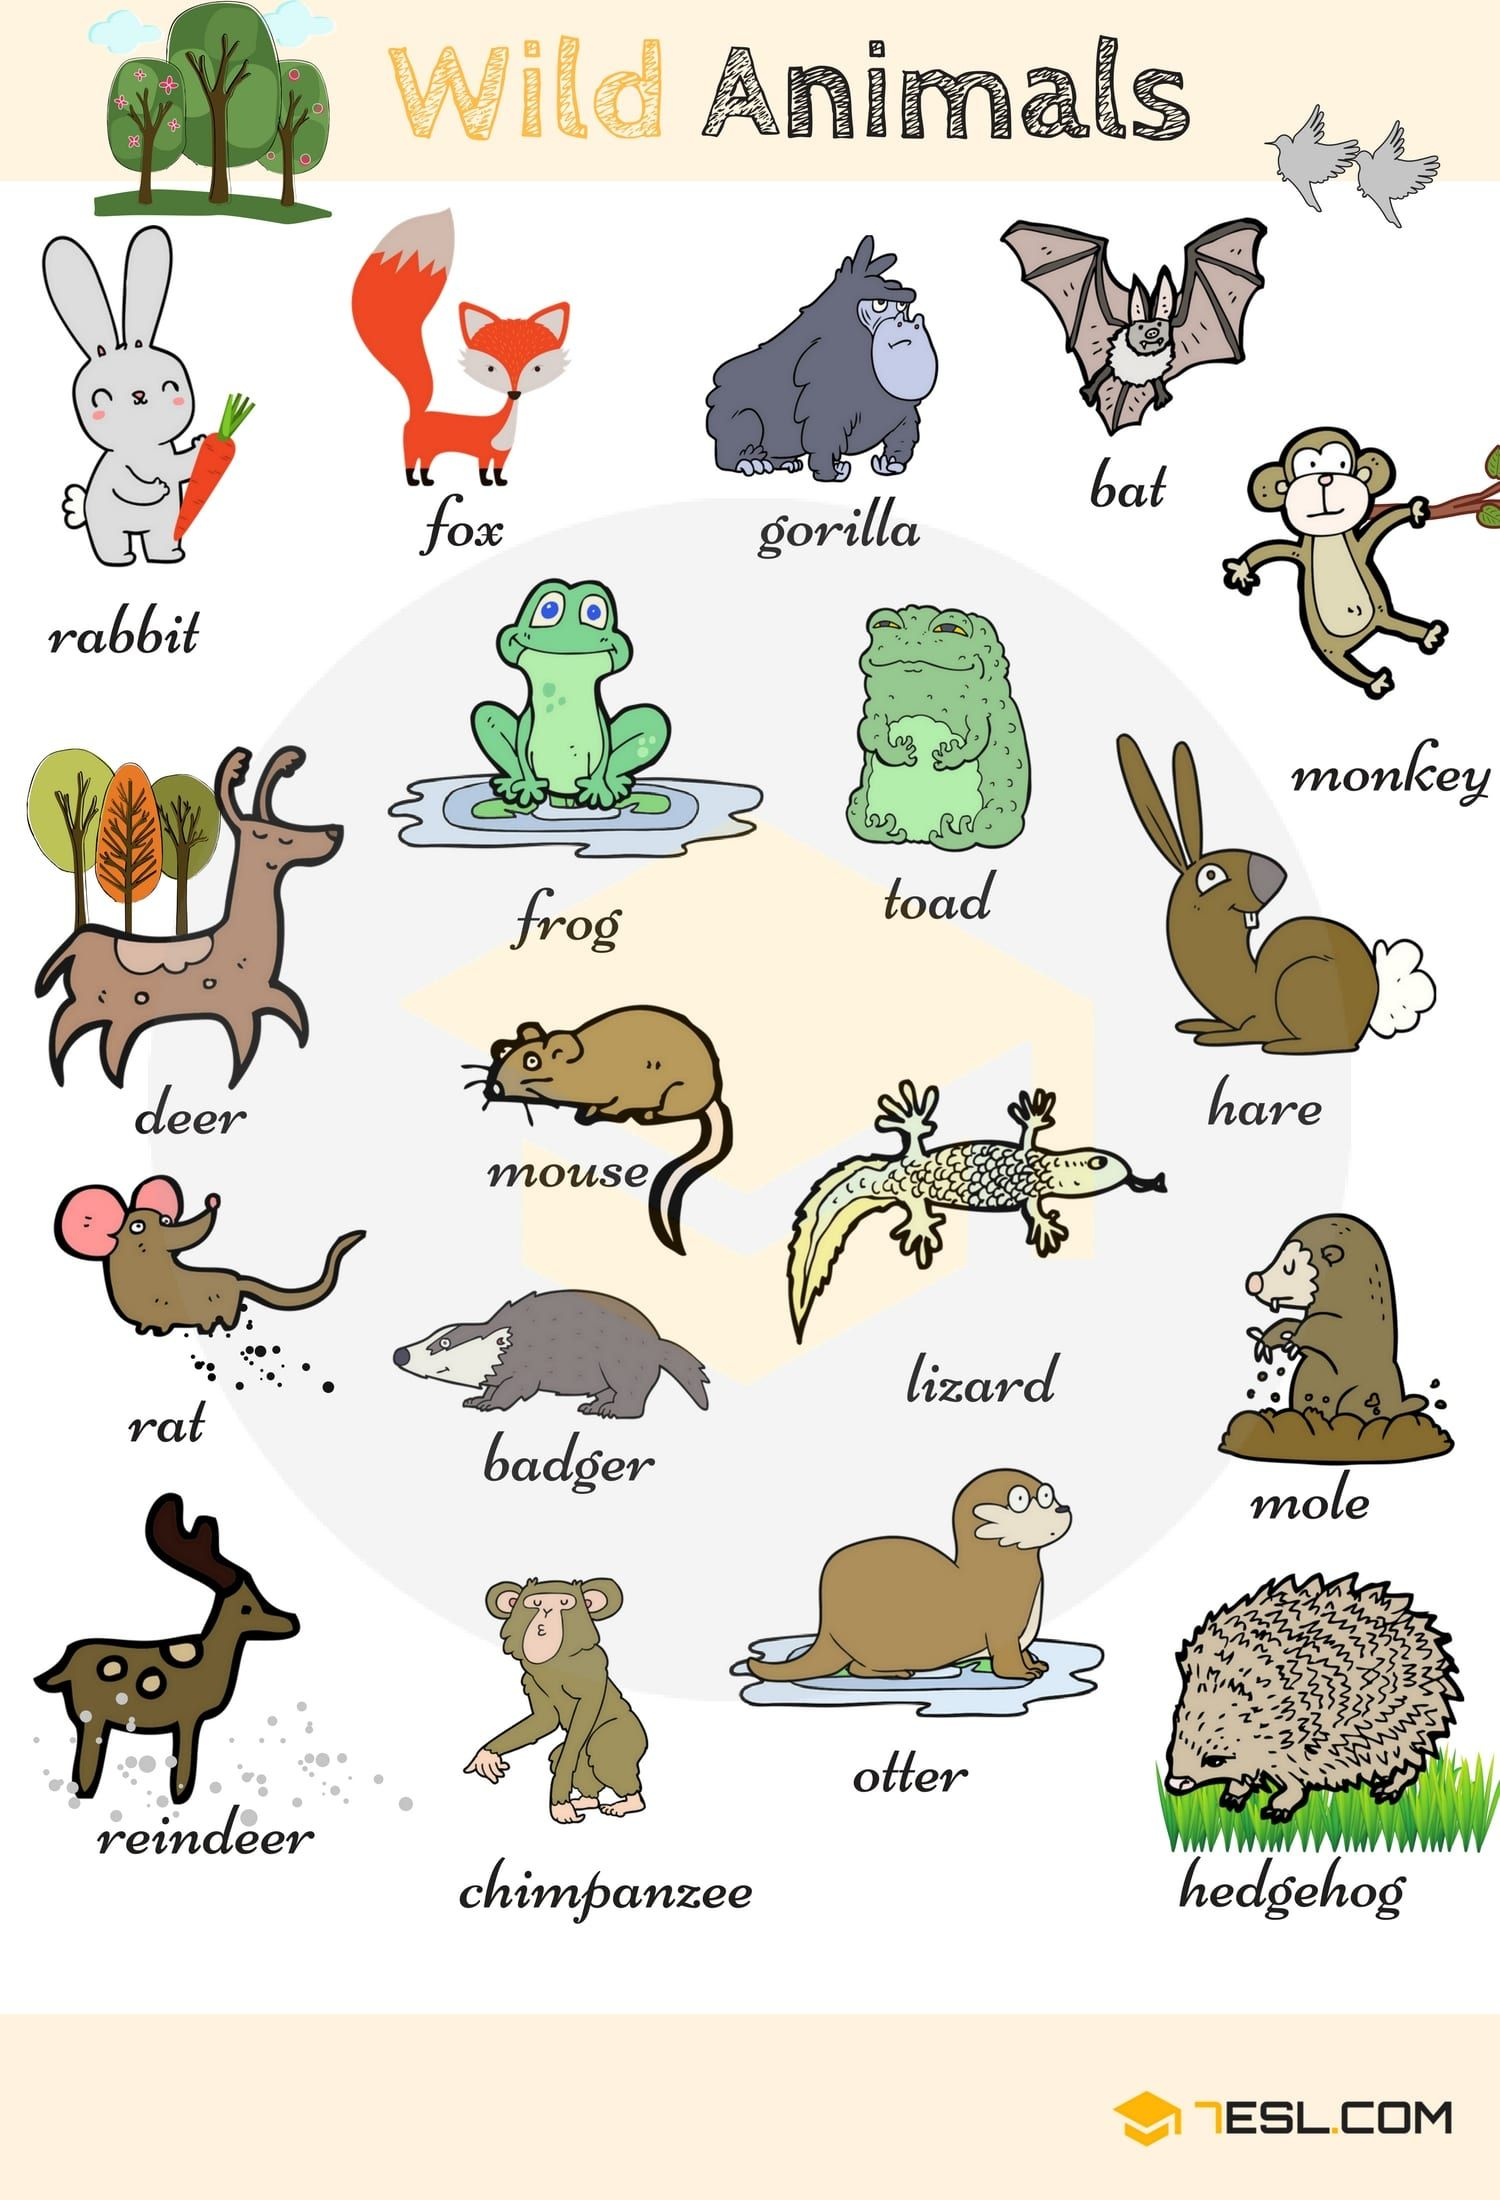 Animal Names Types Of Animals With List Pictures Animales En Ingles Animales Salvajes Fichas Ingles Infantil